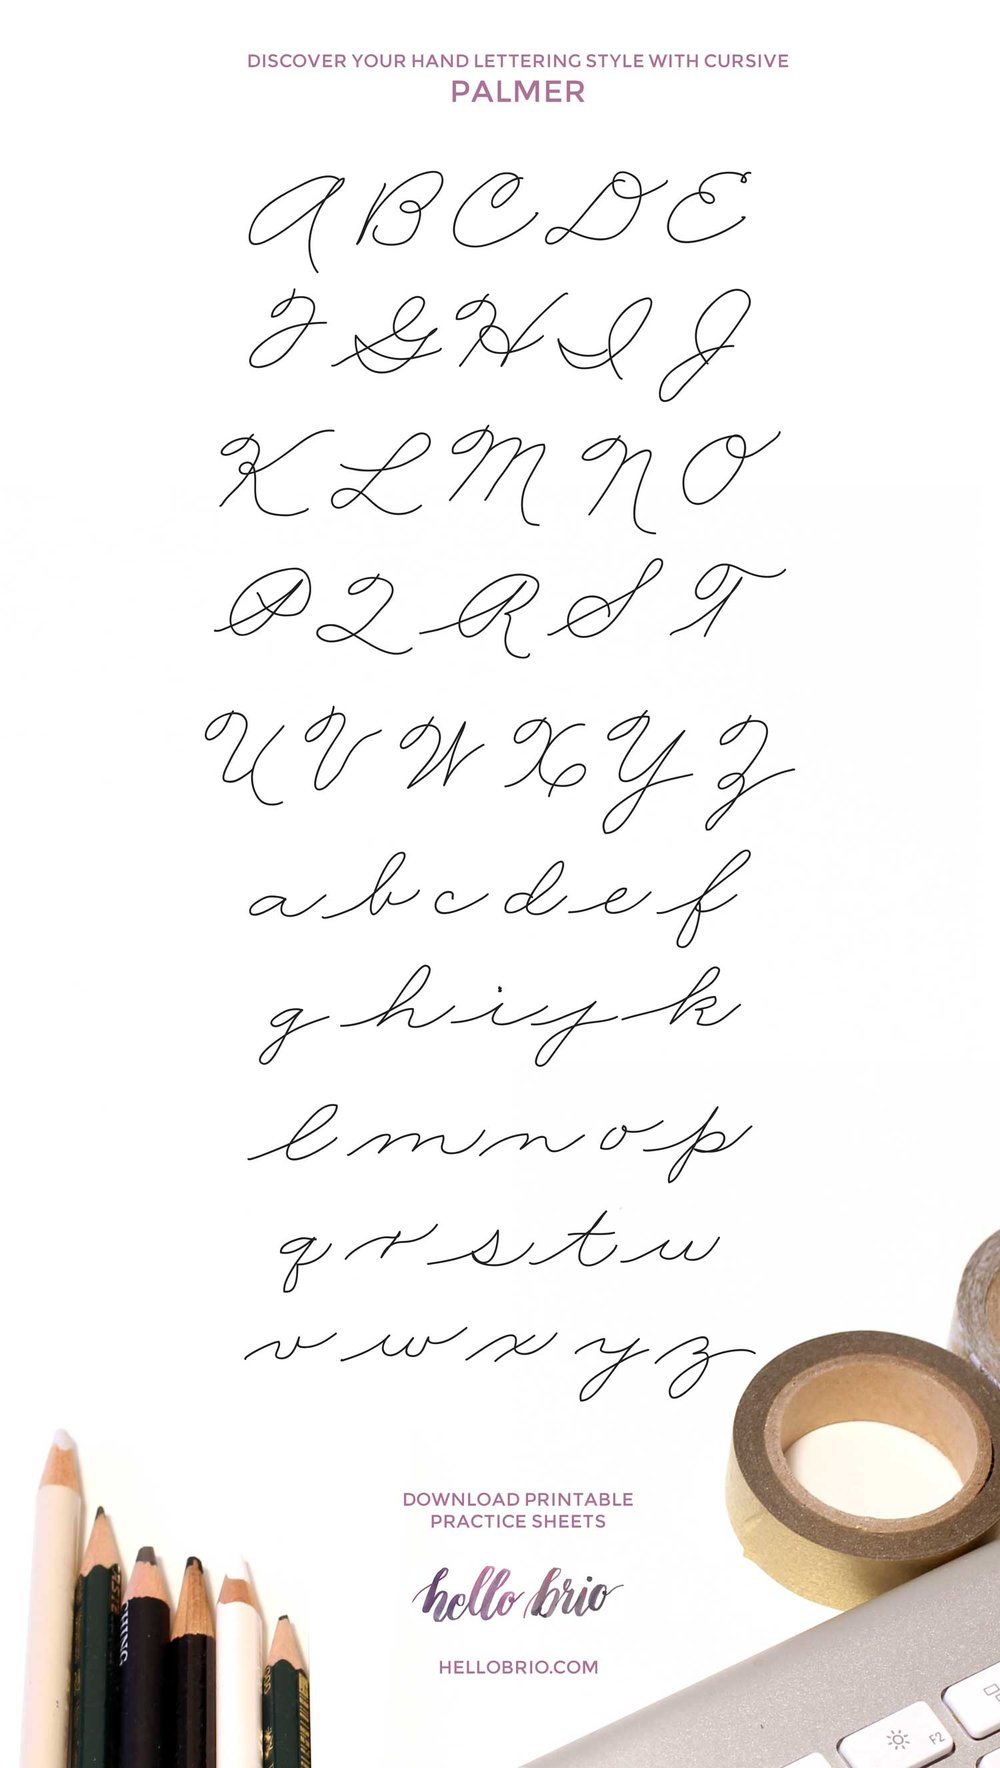 Improve your handwriting and find your hand lettering style with traditional cursive—Palmer Method